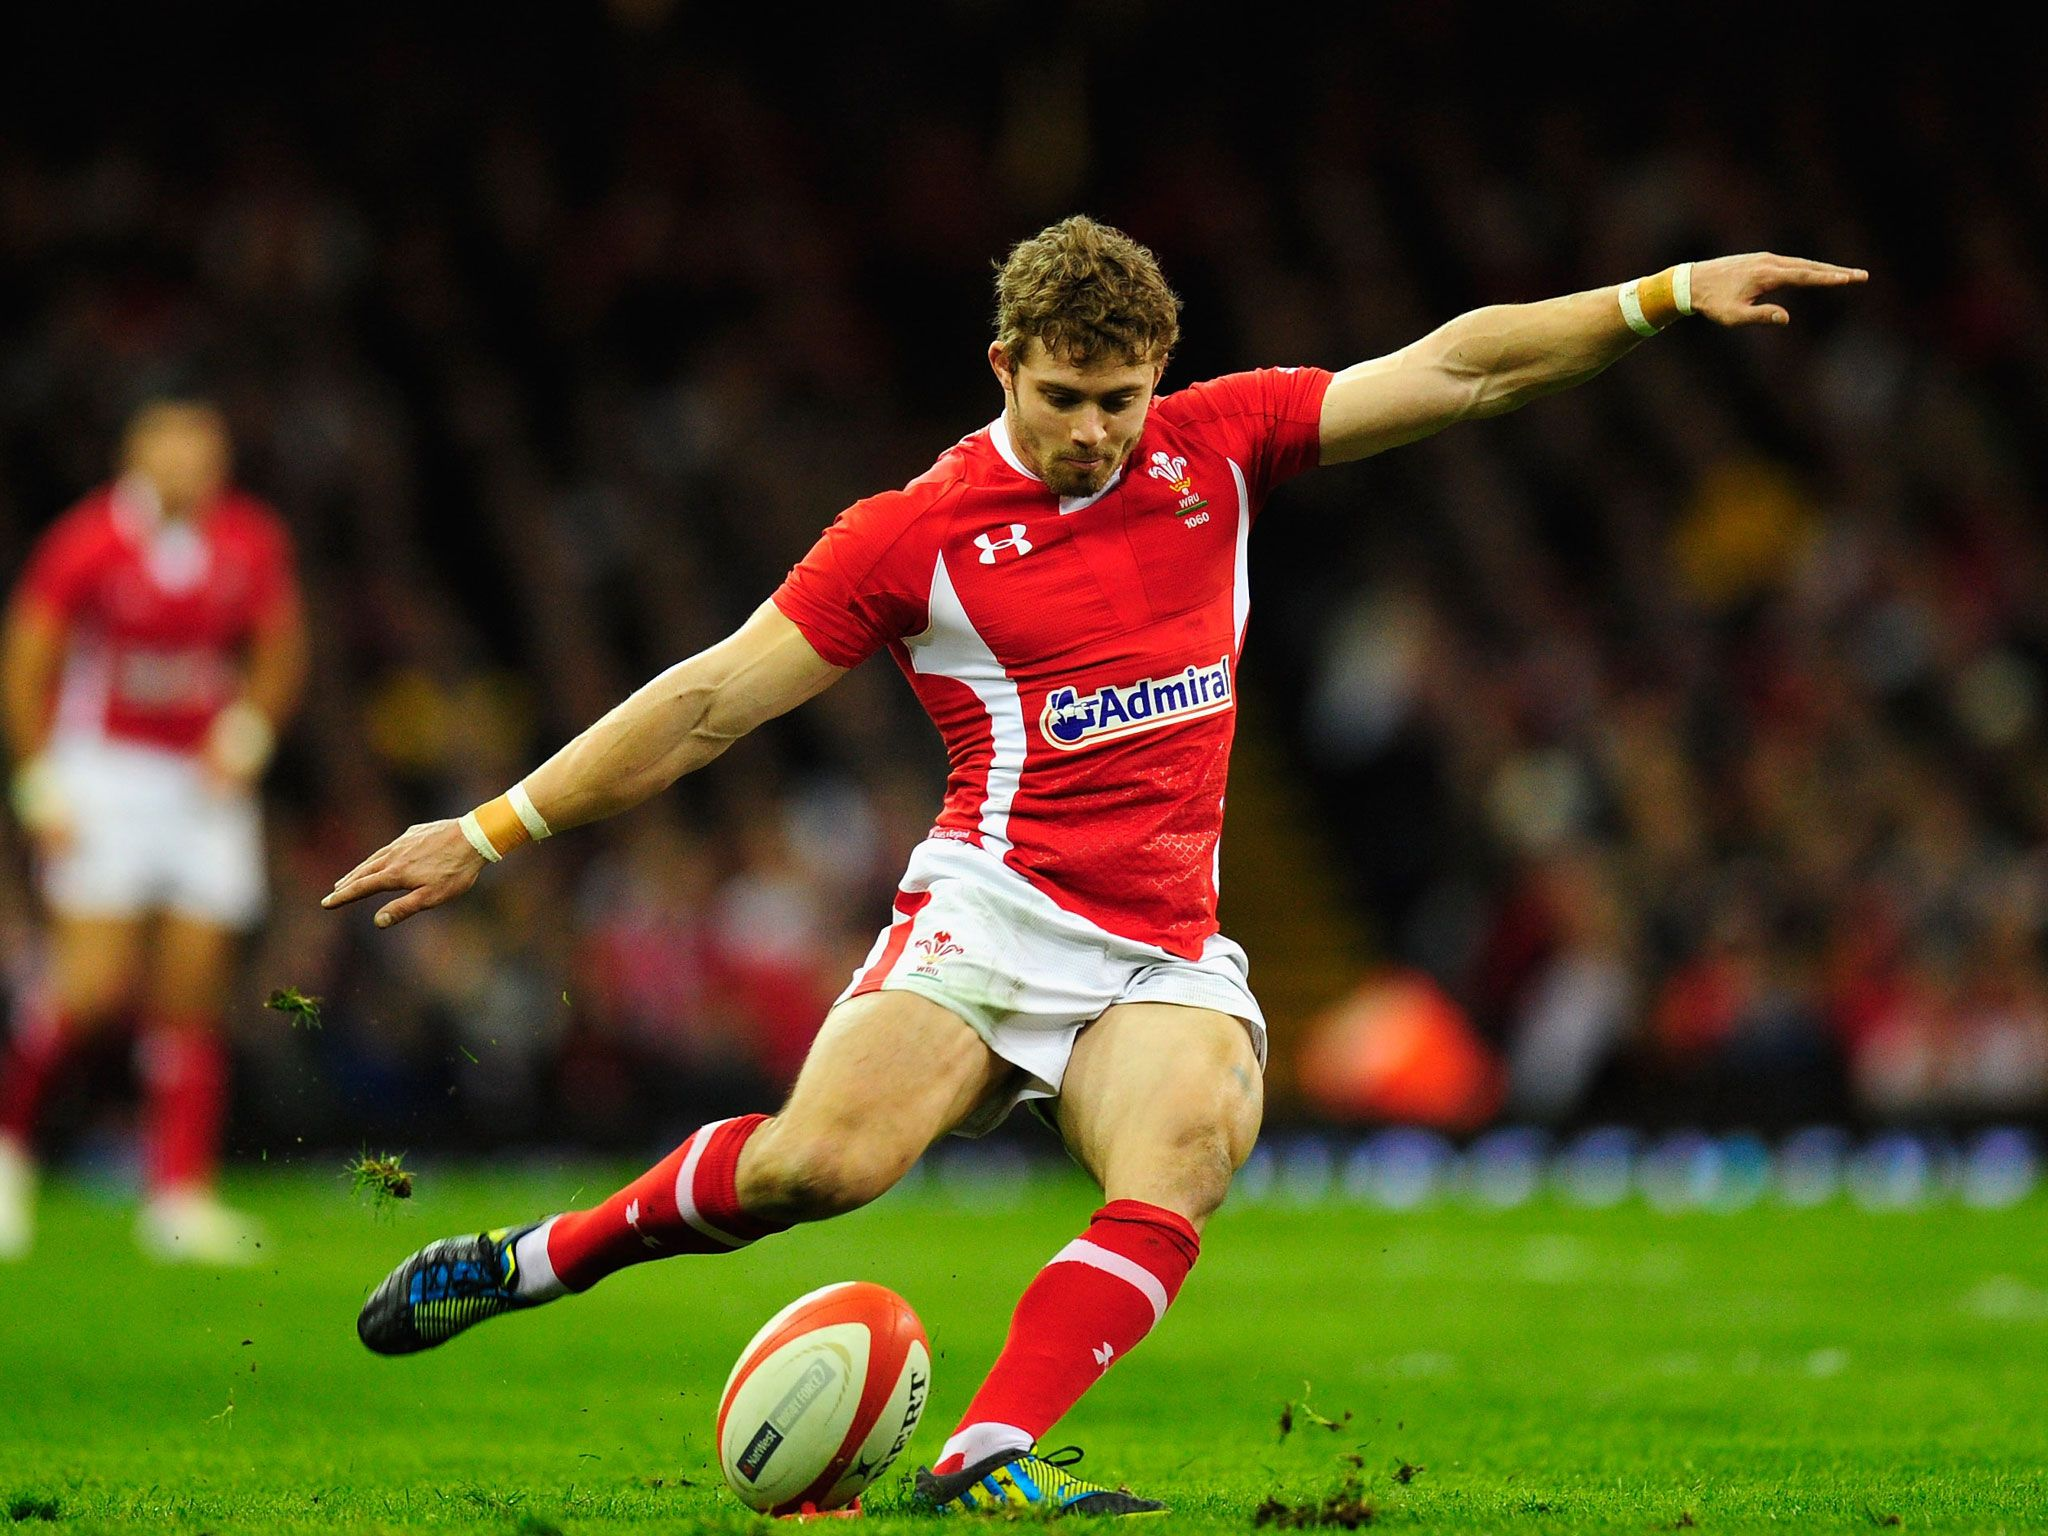 Pin By Erika Ackerman On Welsh Rugby Rugby Men Wales Rugby Six Nations Rugby